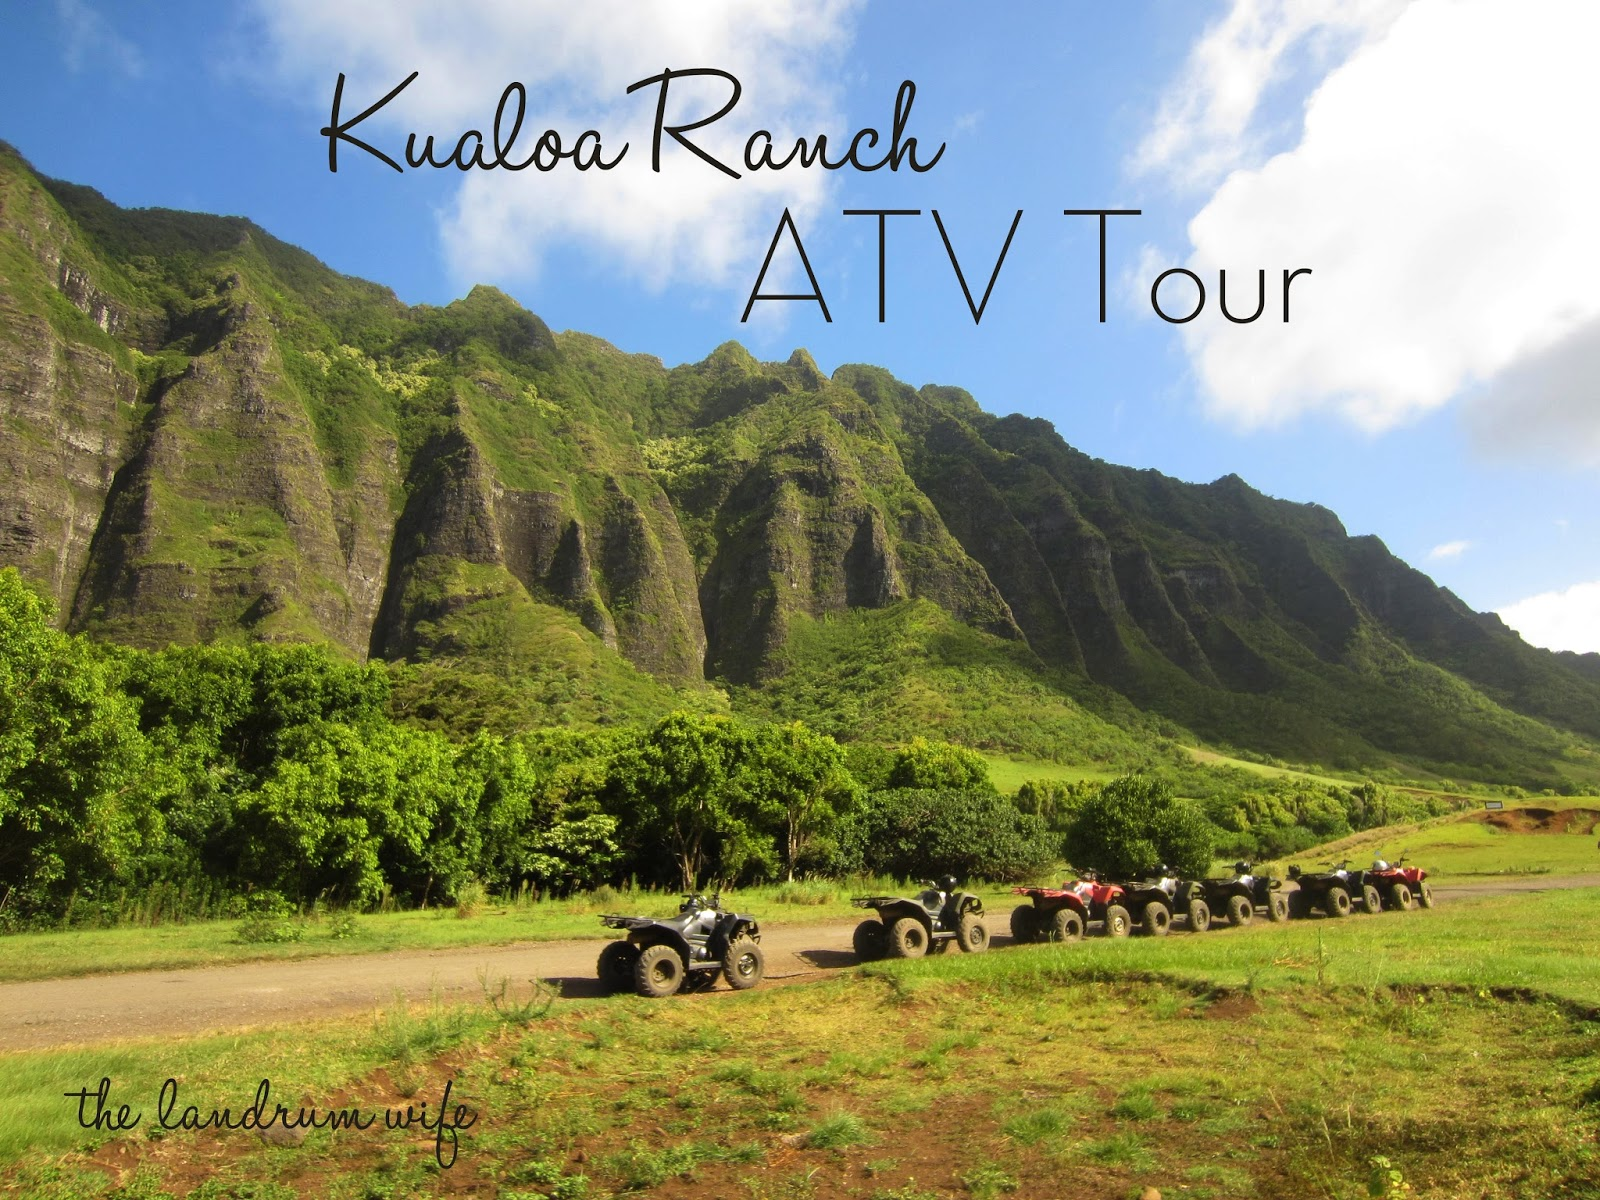 Hawaii Ranch Tours